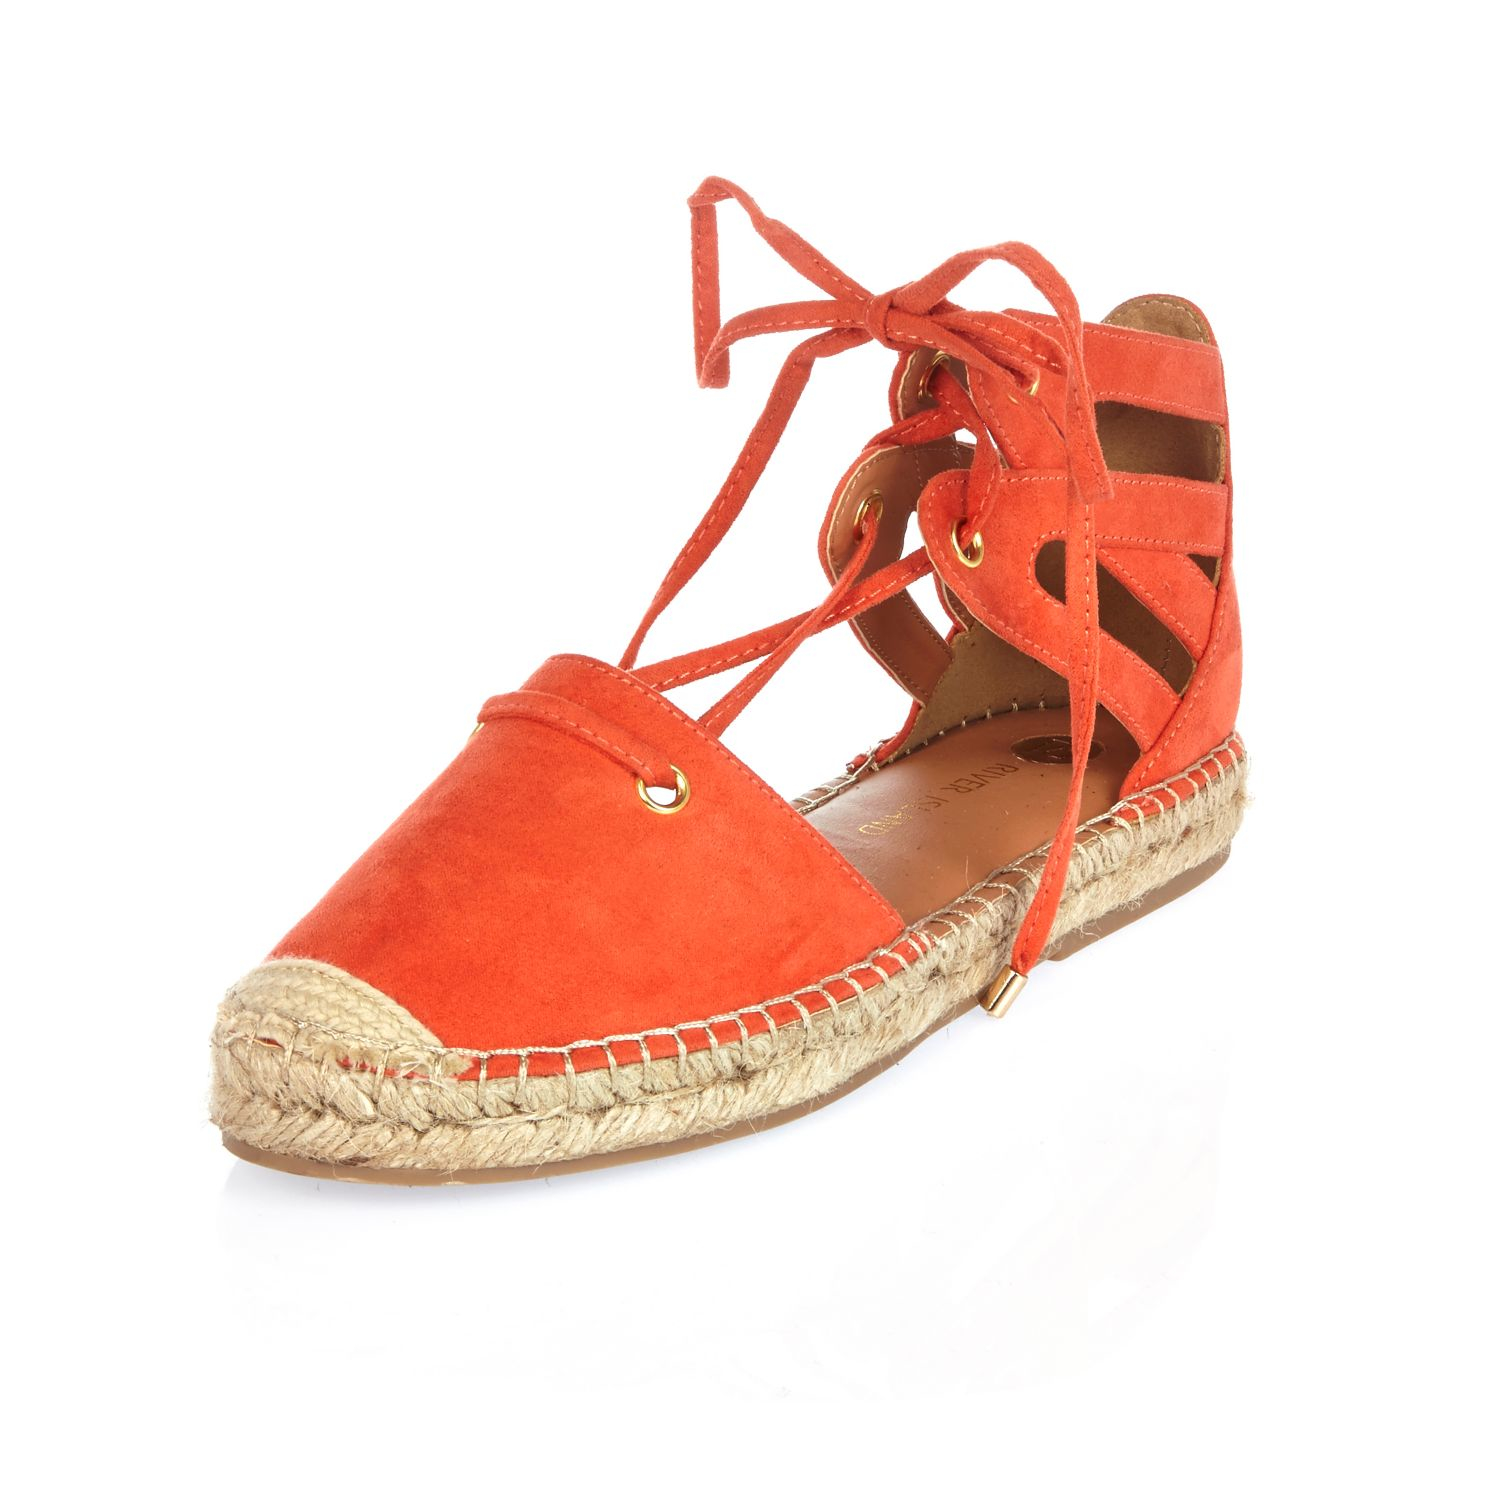 River Island Light Orange Shoes